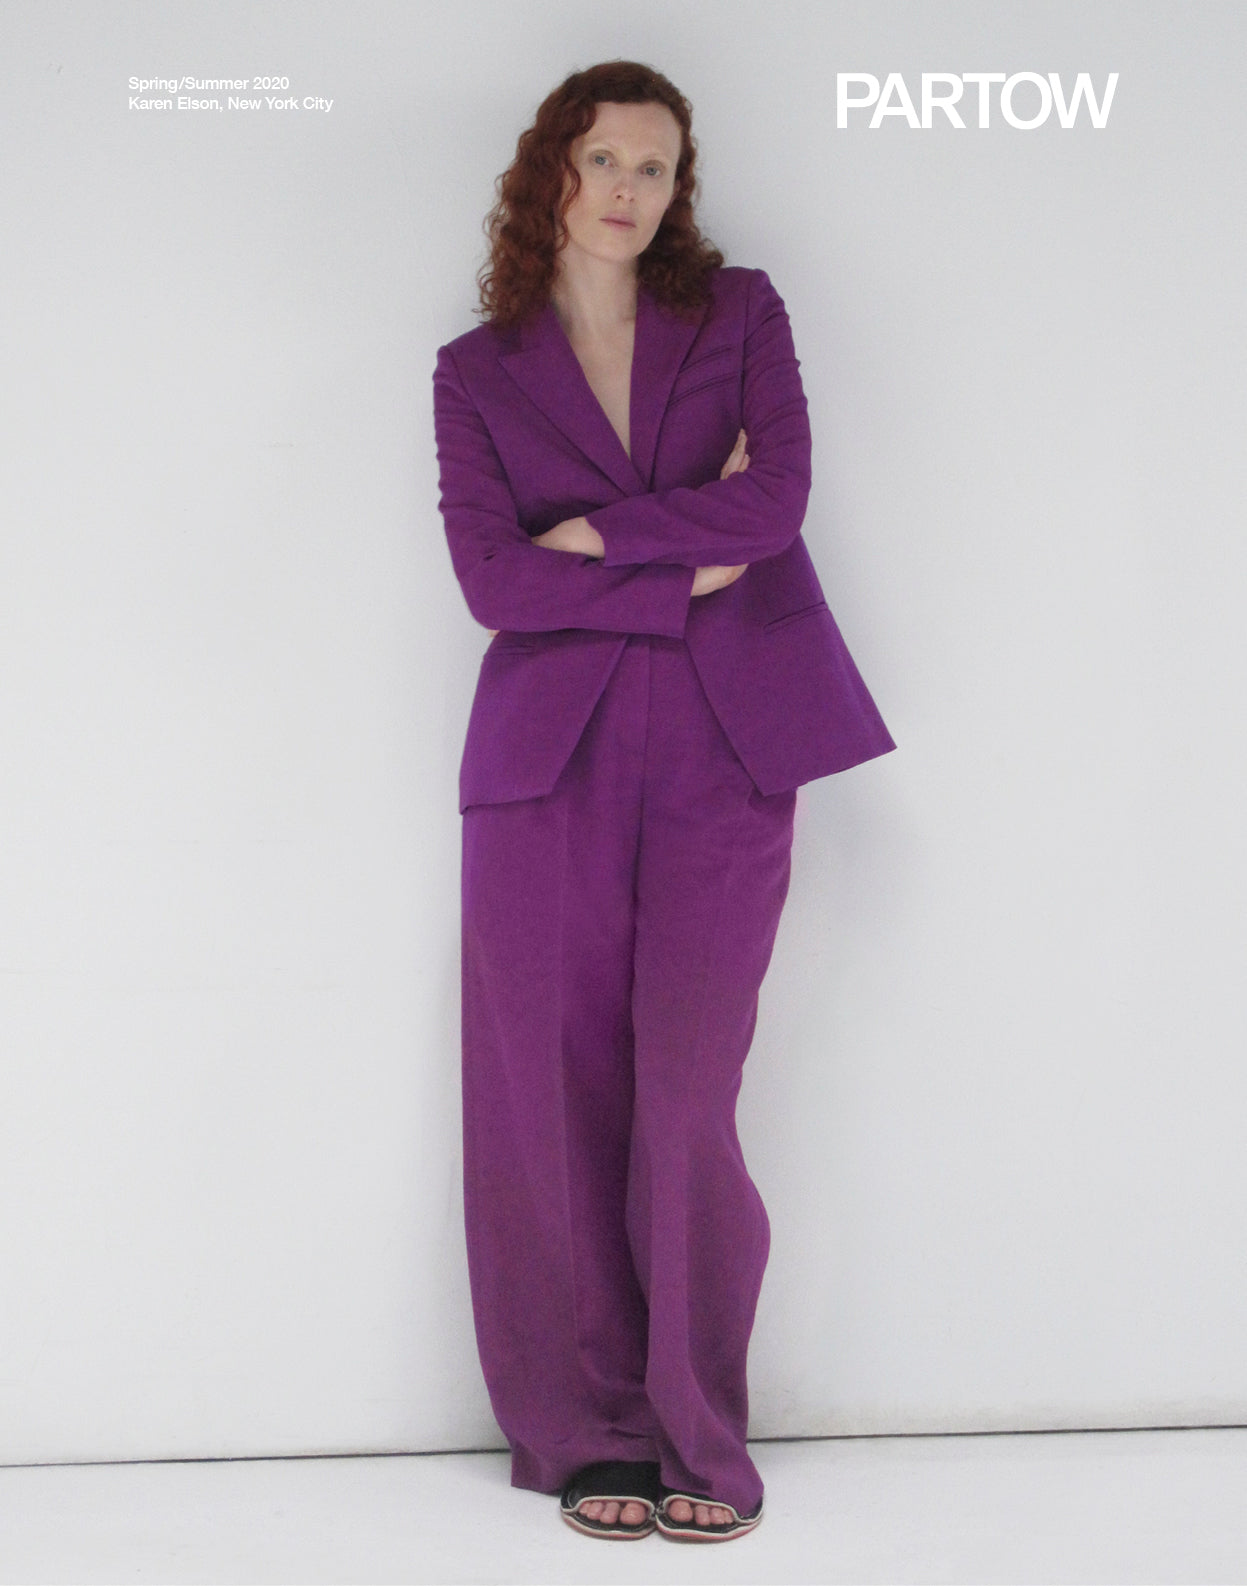 PARTOW Spring / Summer 2020 Karen Elson New York City